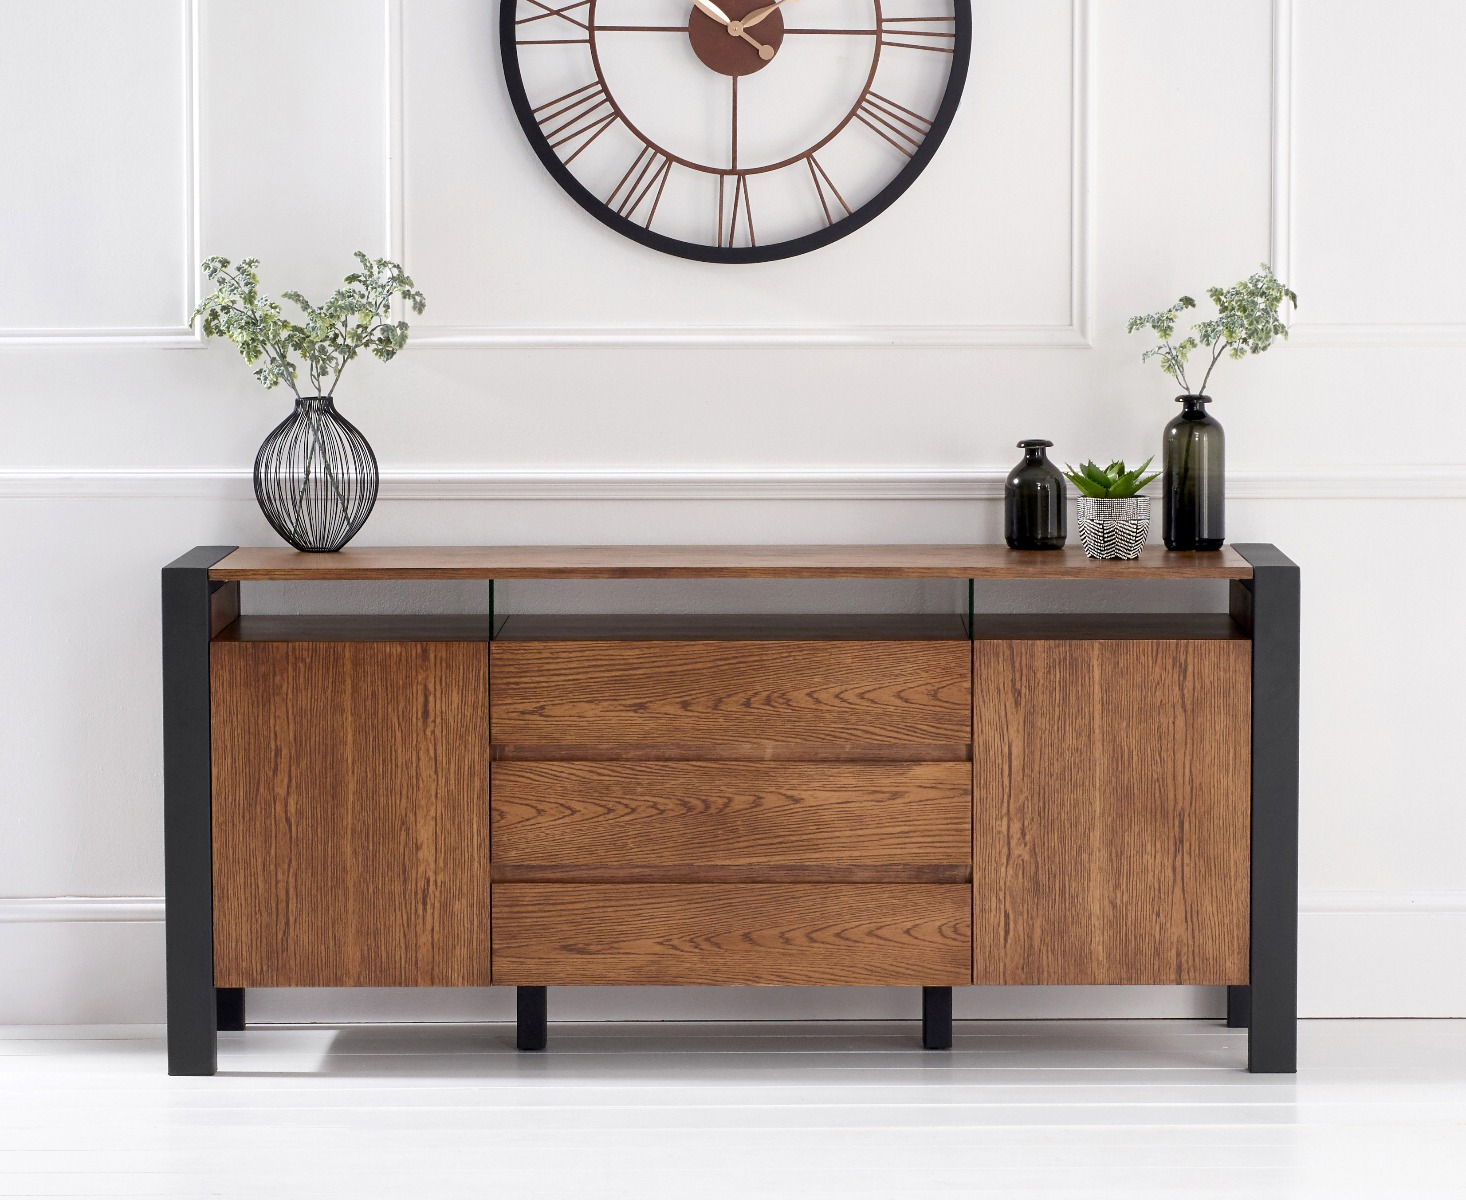 Chateau 180cm Solid Oak and Black Leg Metal Sideboard